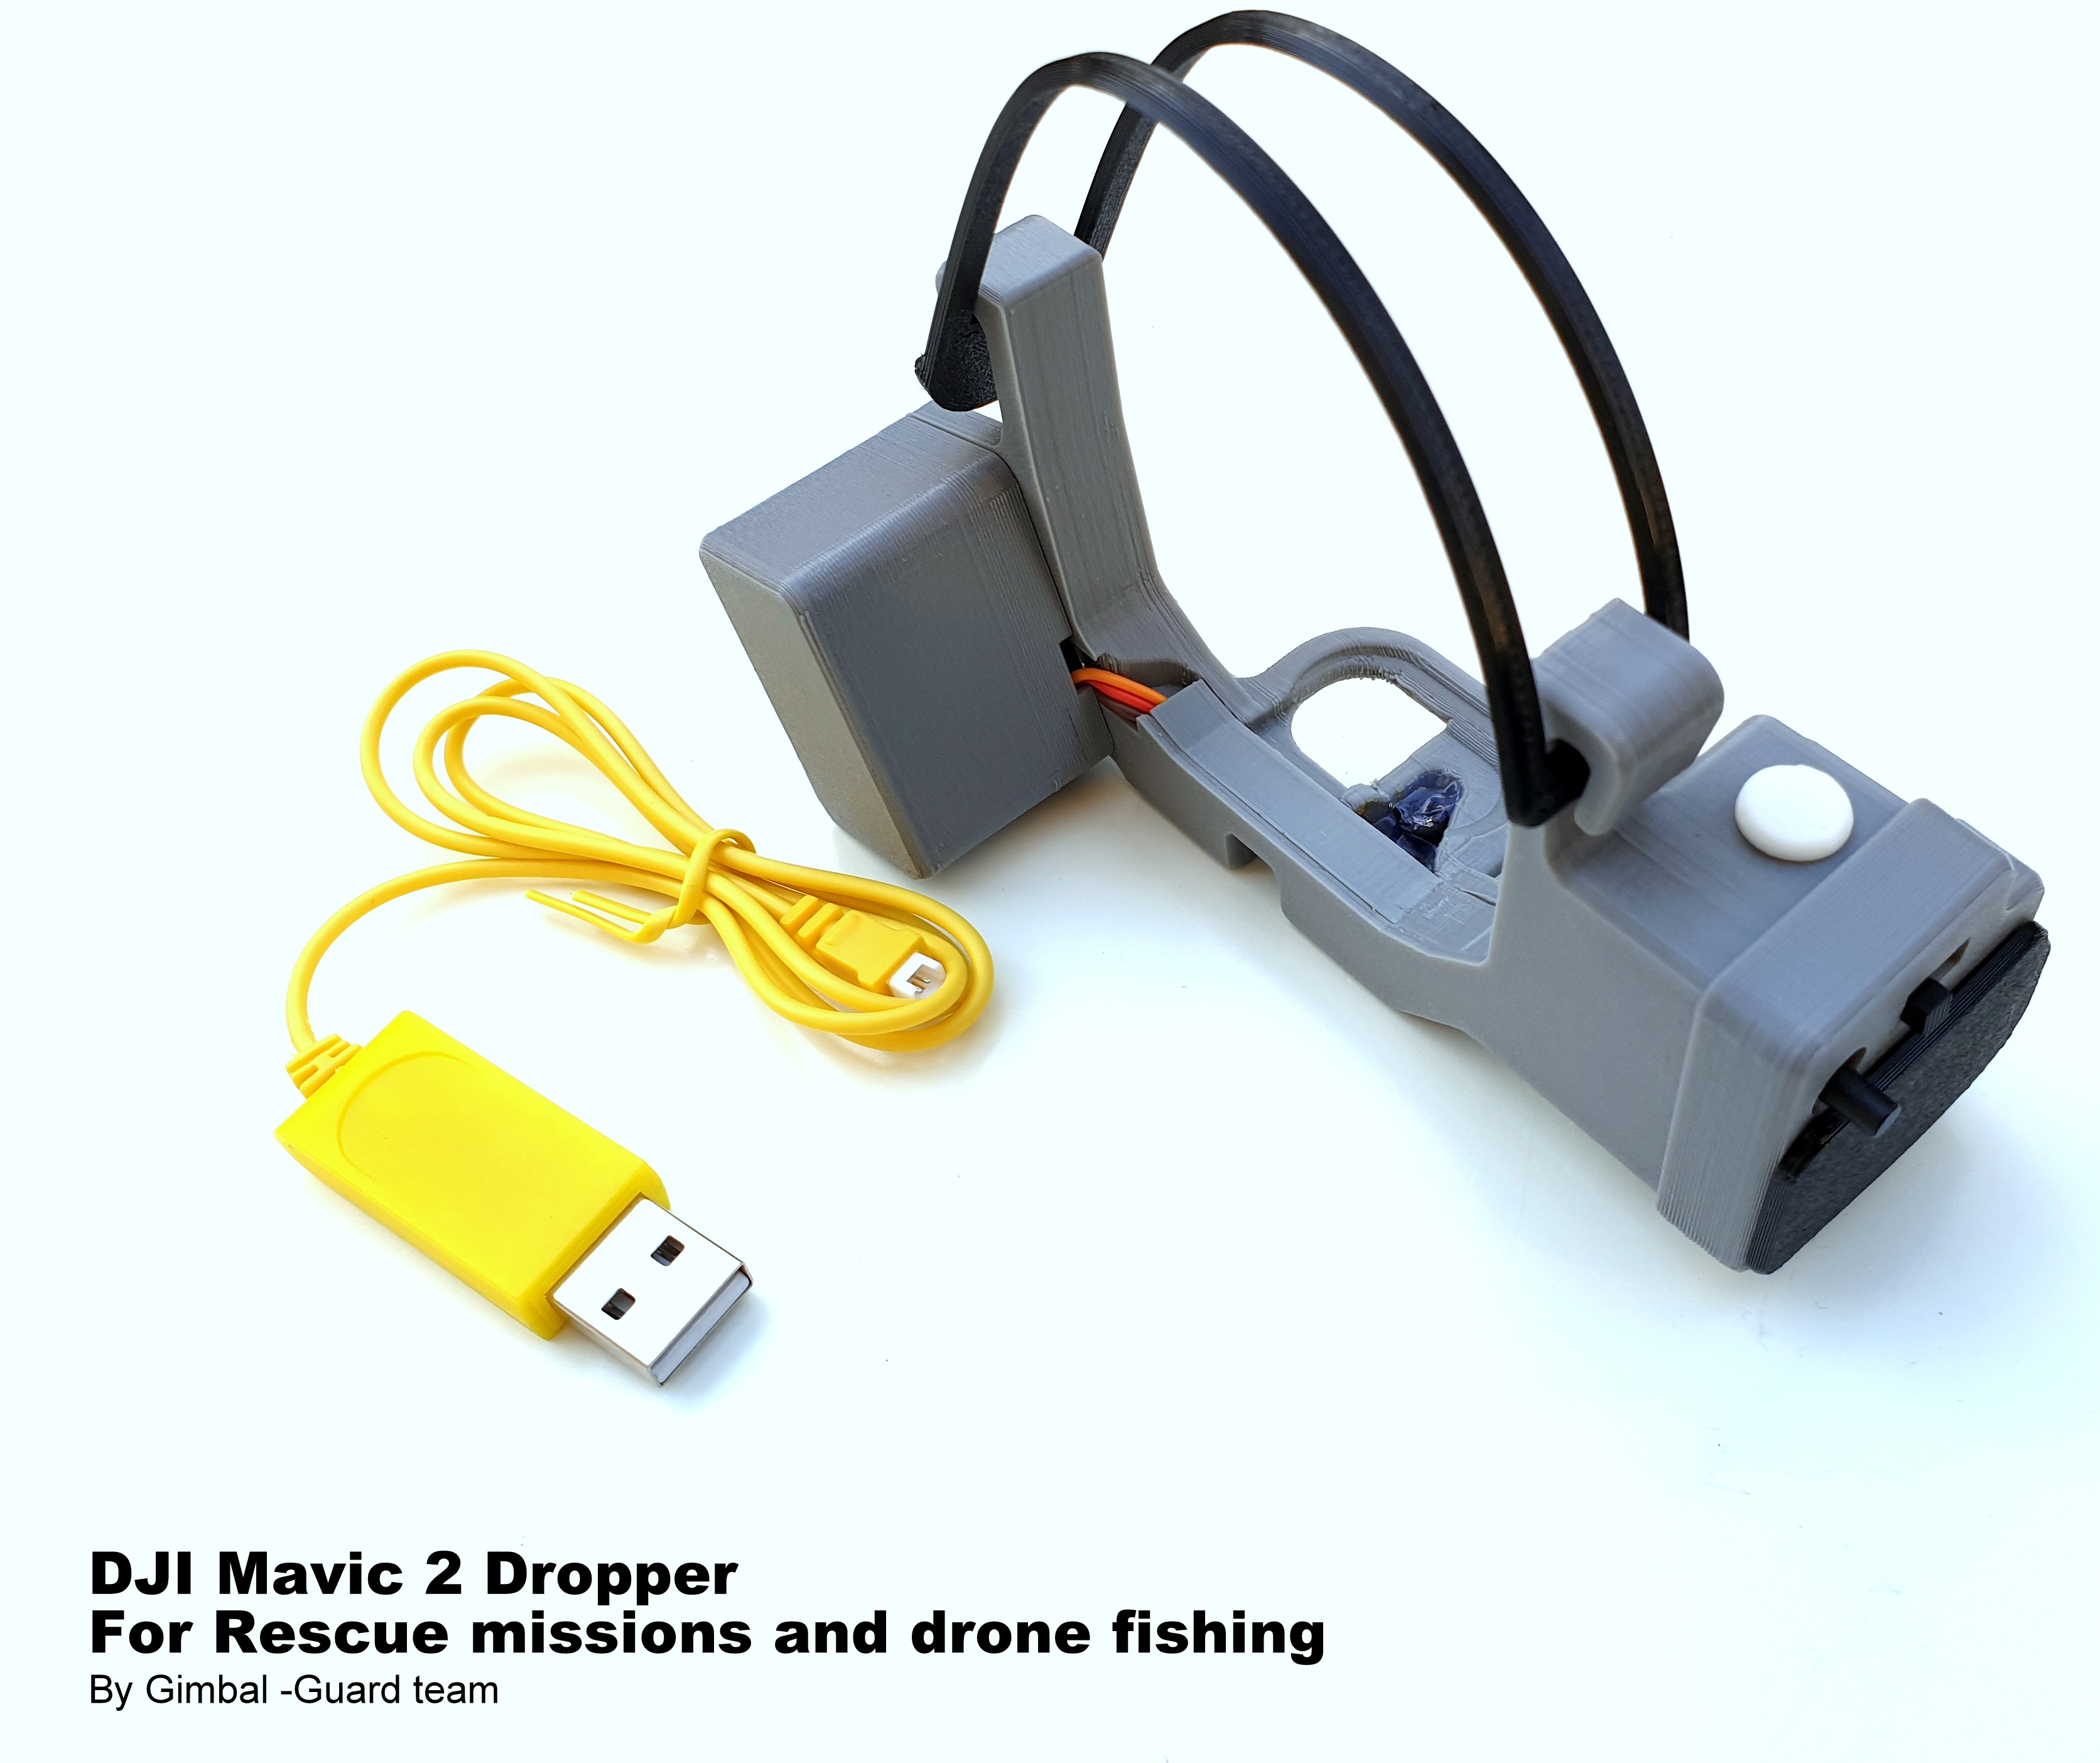 Mavic 2 Dropper for Rescue missions and